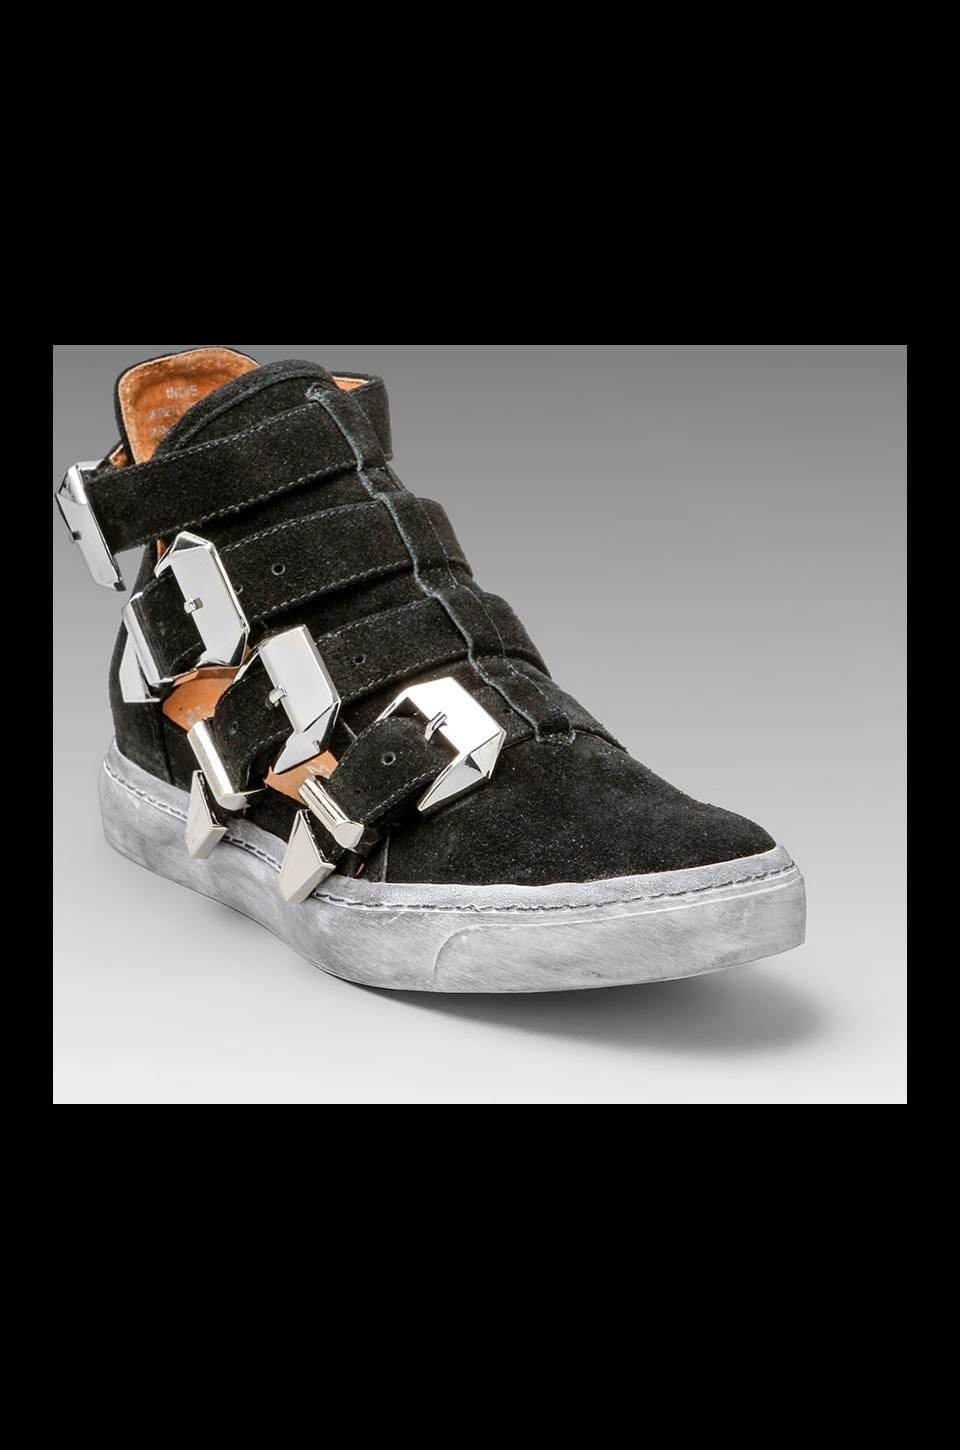 Jeffrey Campbell Indie Cut Out Sneaker in Black Suede/Silver